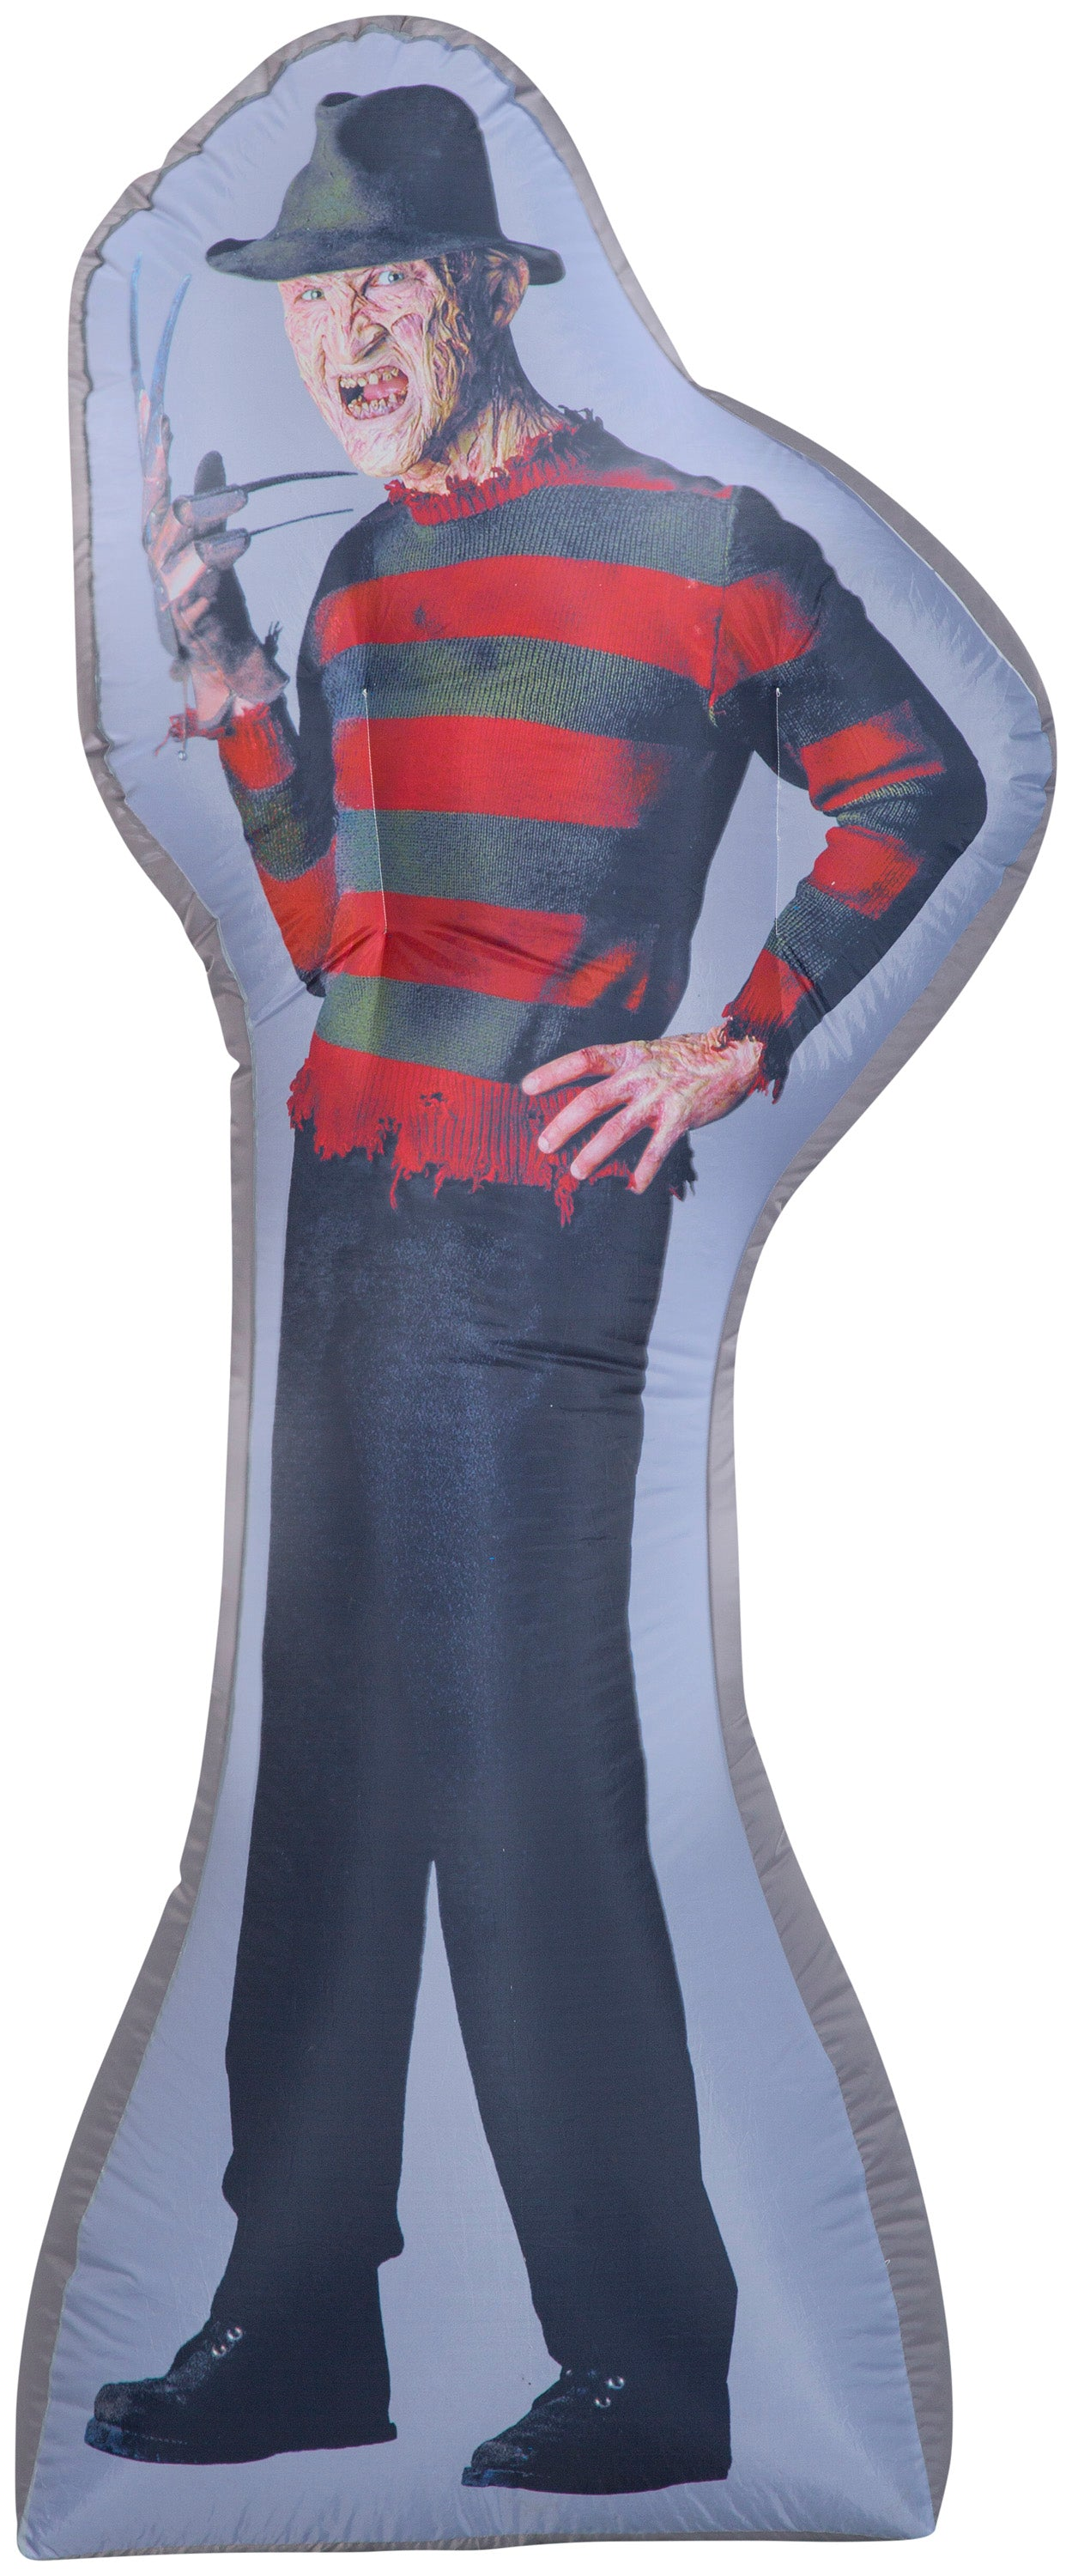 6' Photorealistic Airblown Freddy Kruger Halloween Inflatable